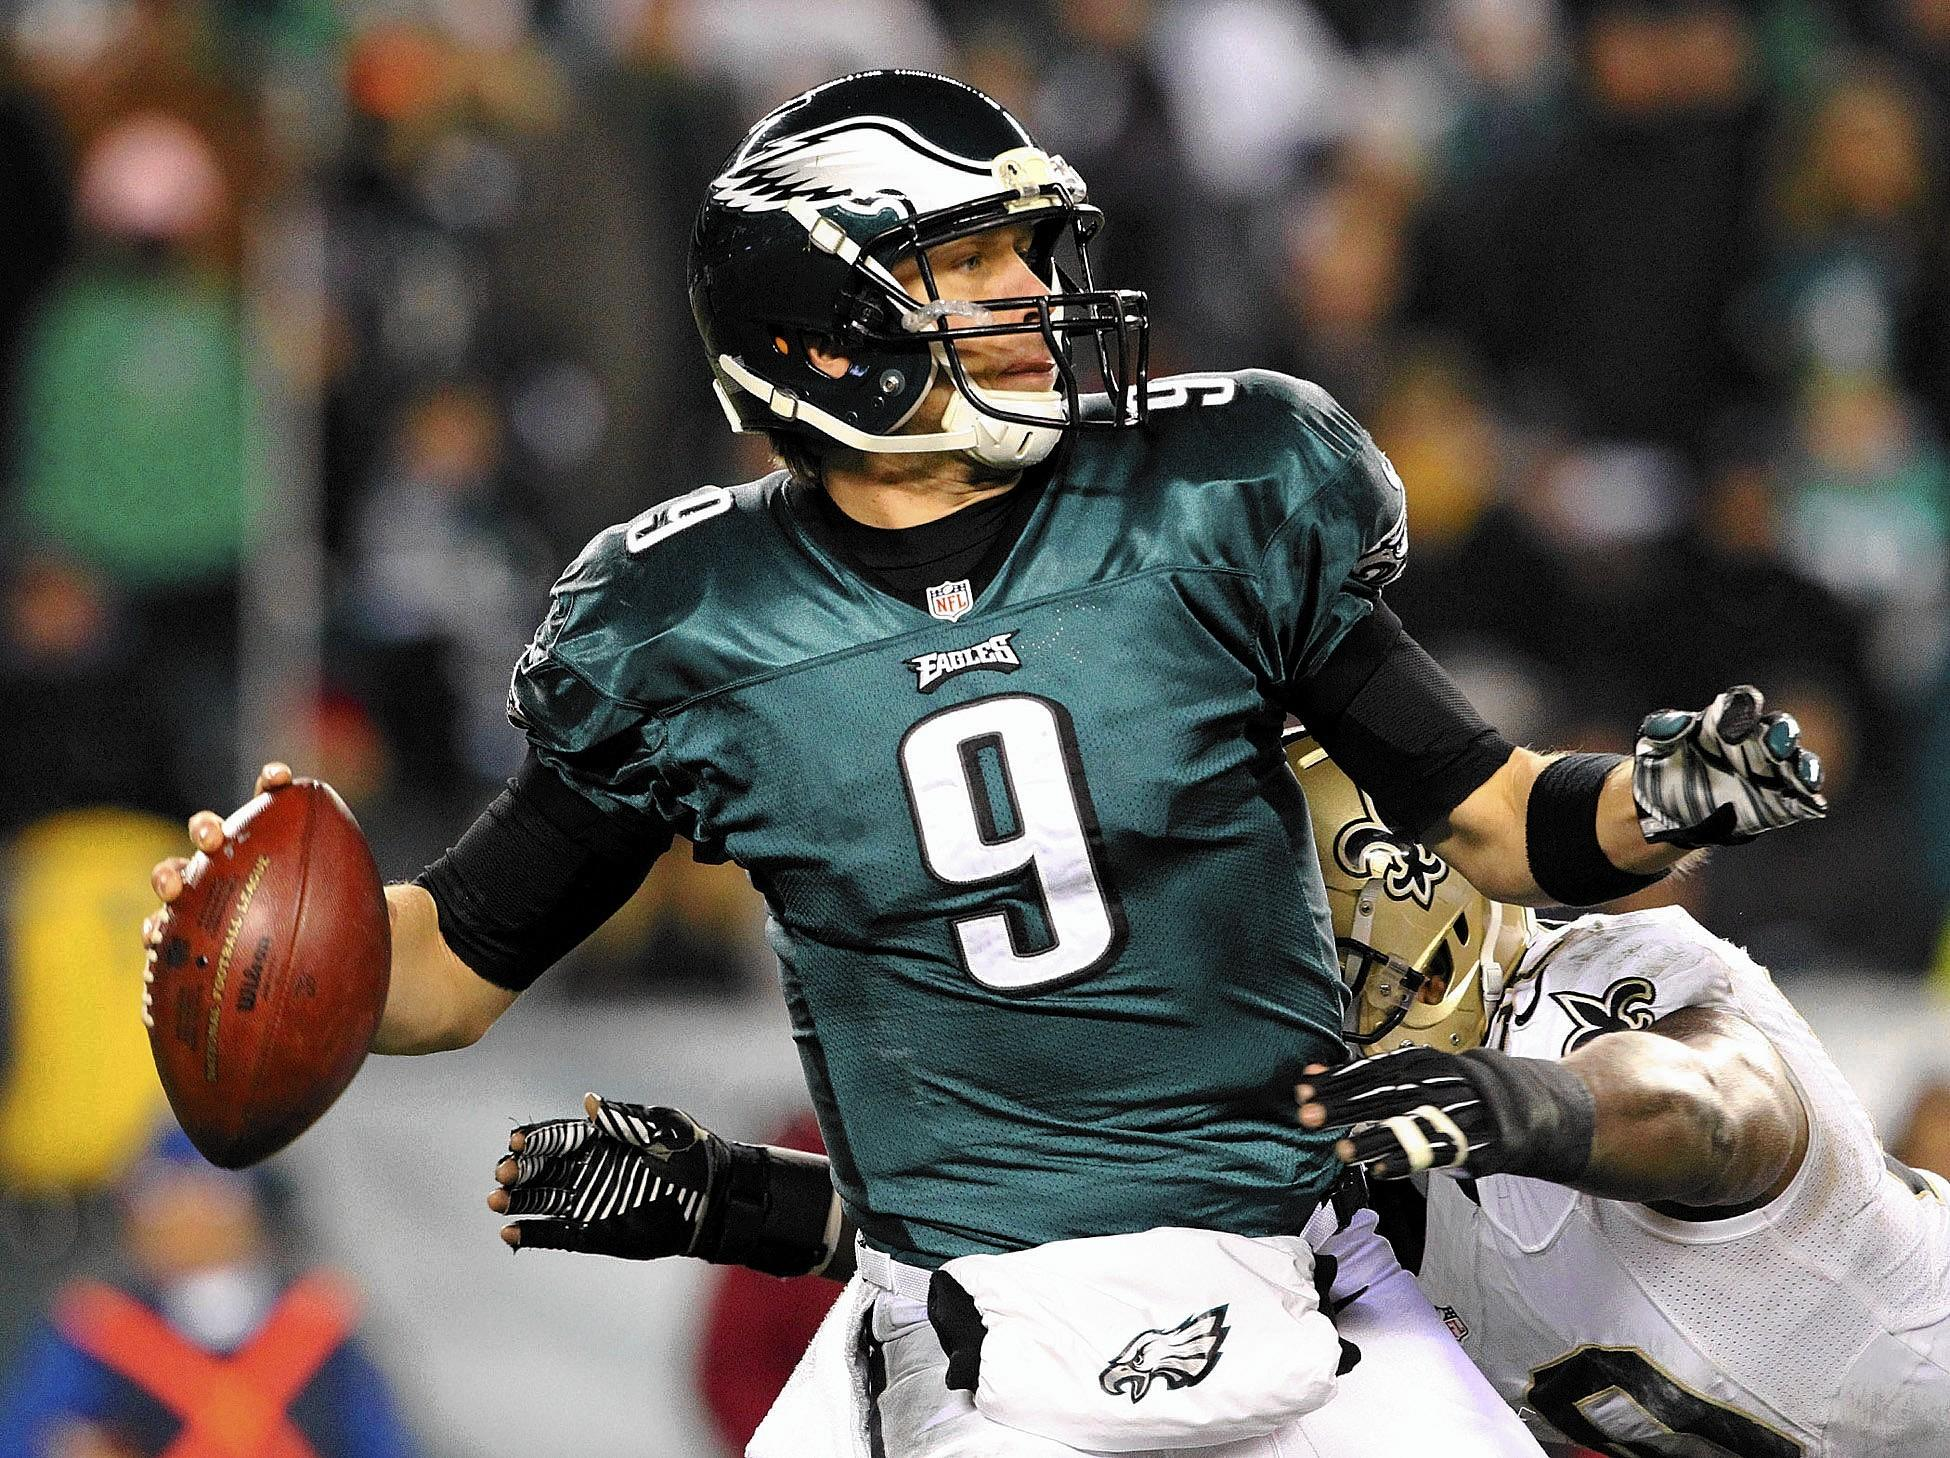 Nick Foles has put together perhaps the best statistical career start of any quarterback in NFL history. In 20 appearances, including just 16 starts, he has completed 364 of 582 attempts for 4,590 yards and 33 touchdowns while tossing just seven interceptions. His 1.2 interception percentage is the lowest in league history among all players who've attempted at least 500 passes.